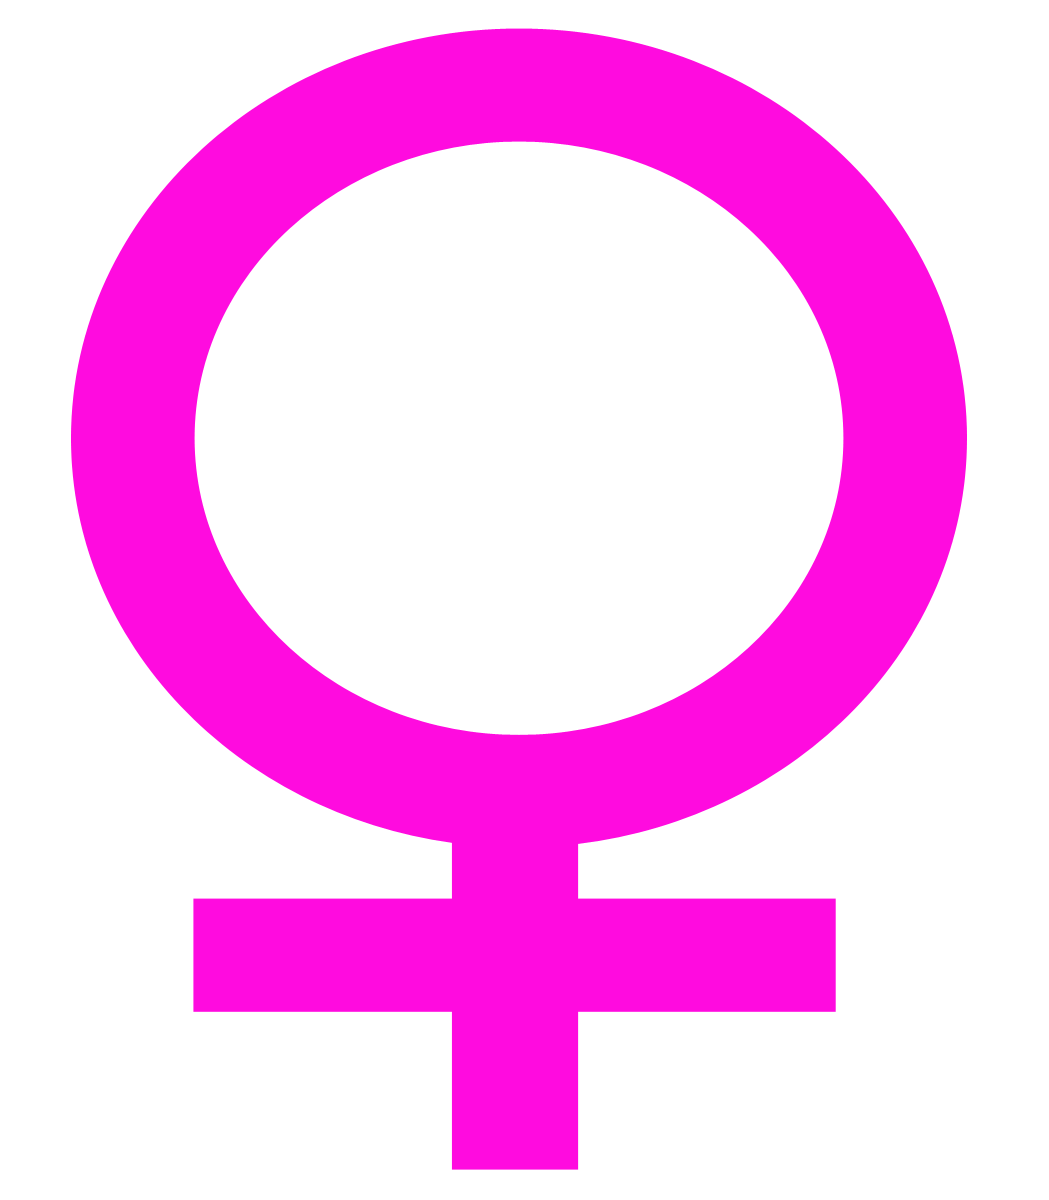 Woman Symbol Transparent Clipart.